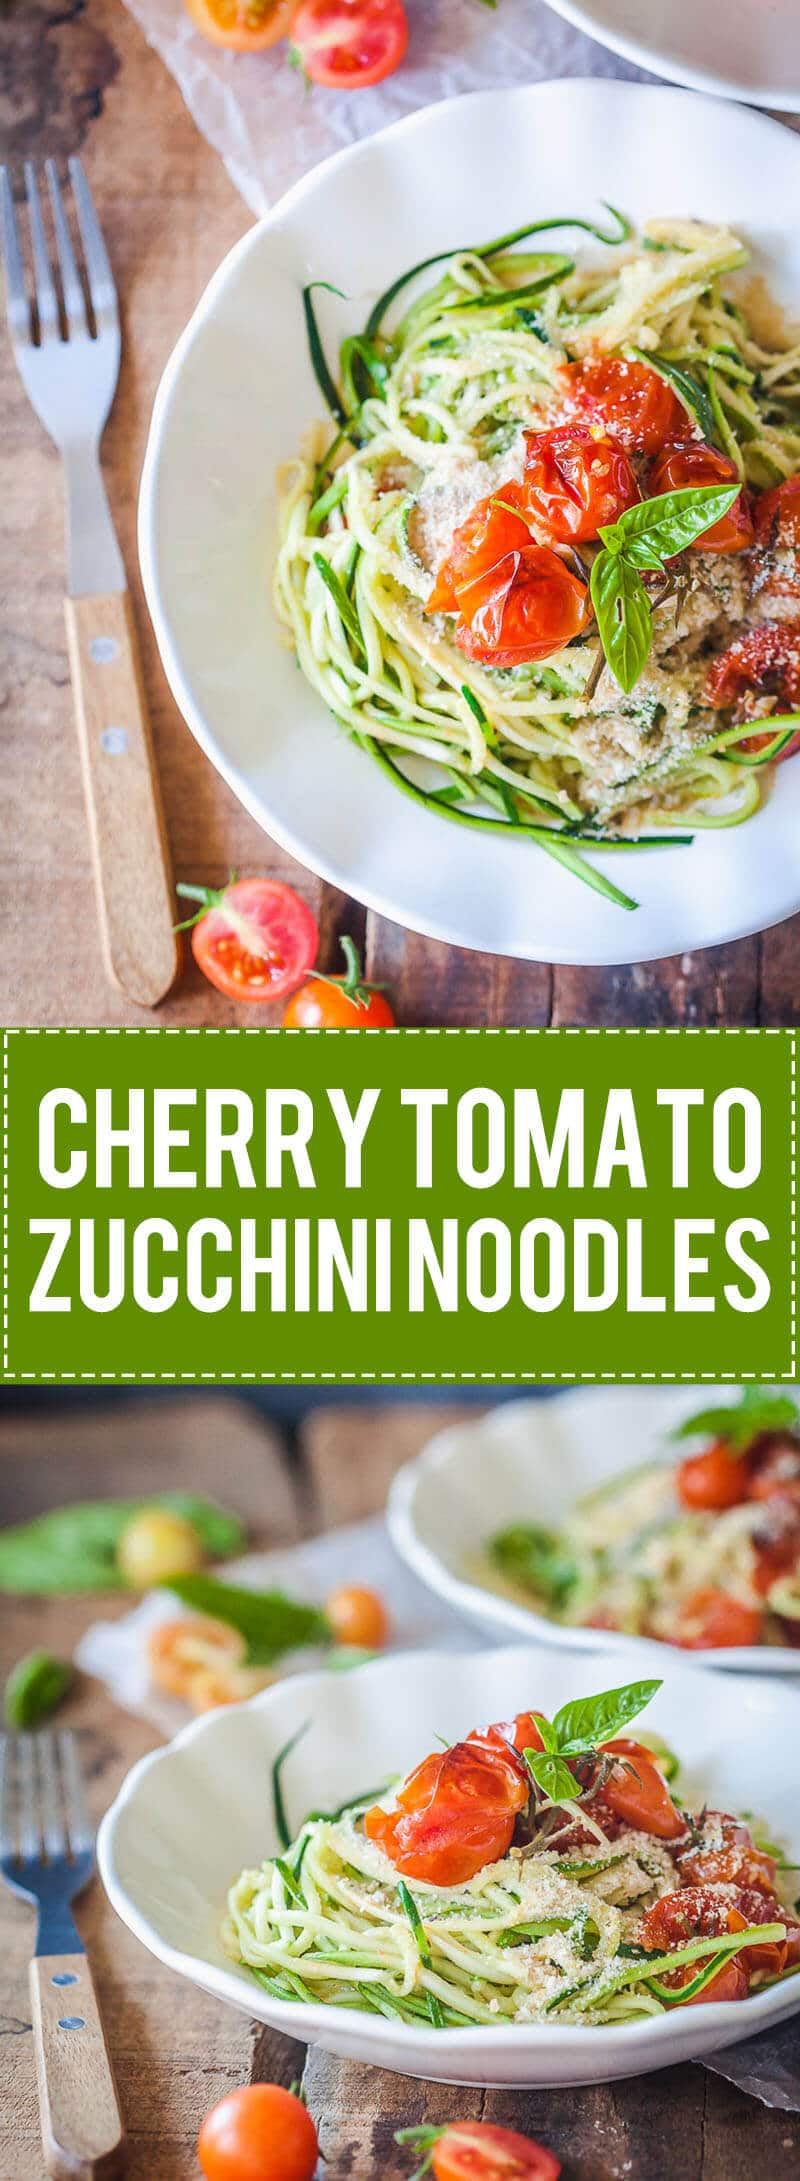 Low-Carb Cherry Tomato Zucchini Noodles are a light & delicious vegan meal with tons of flavor.